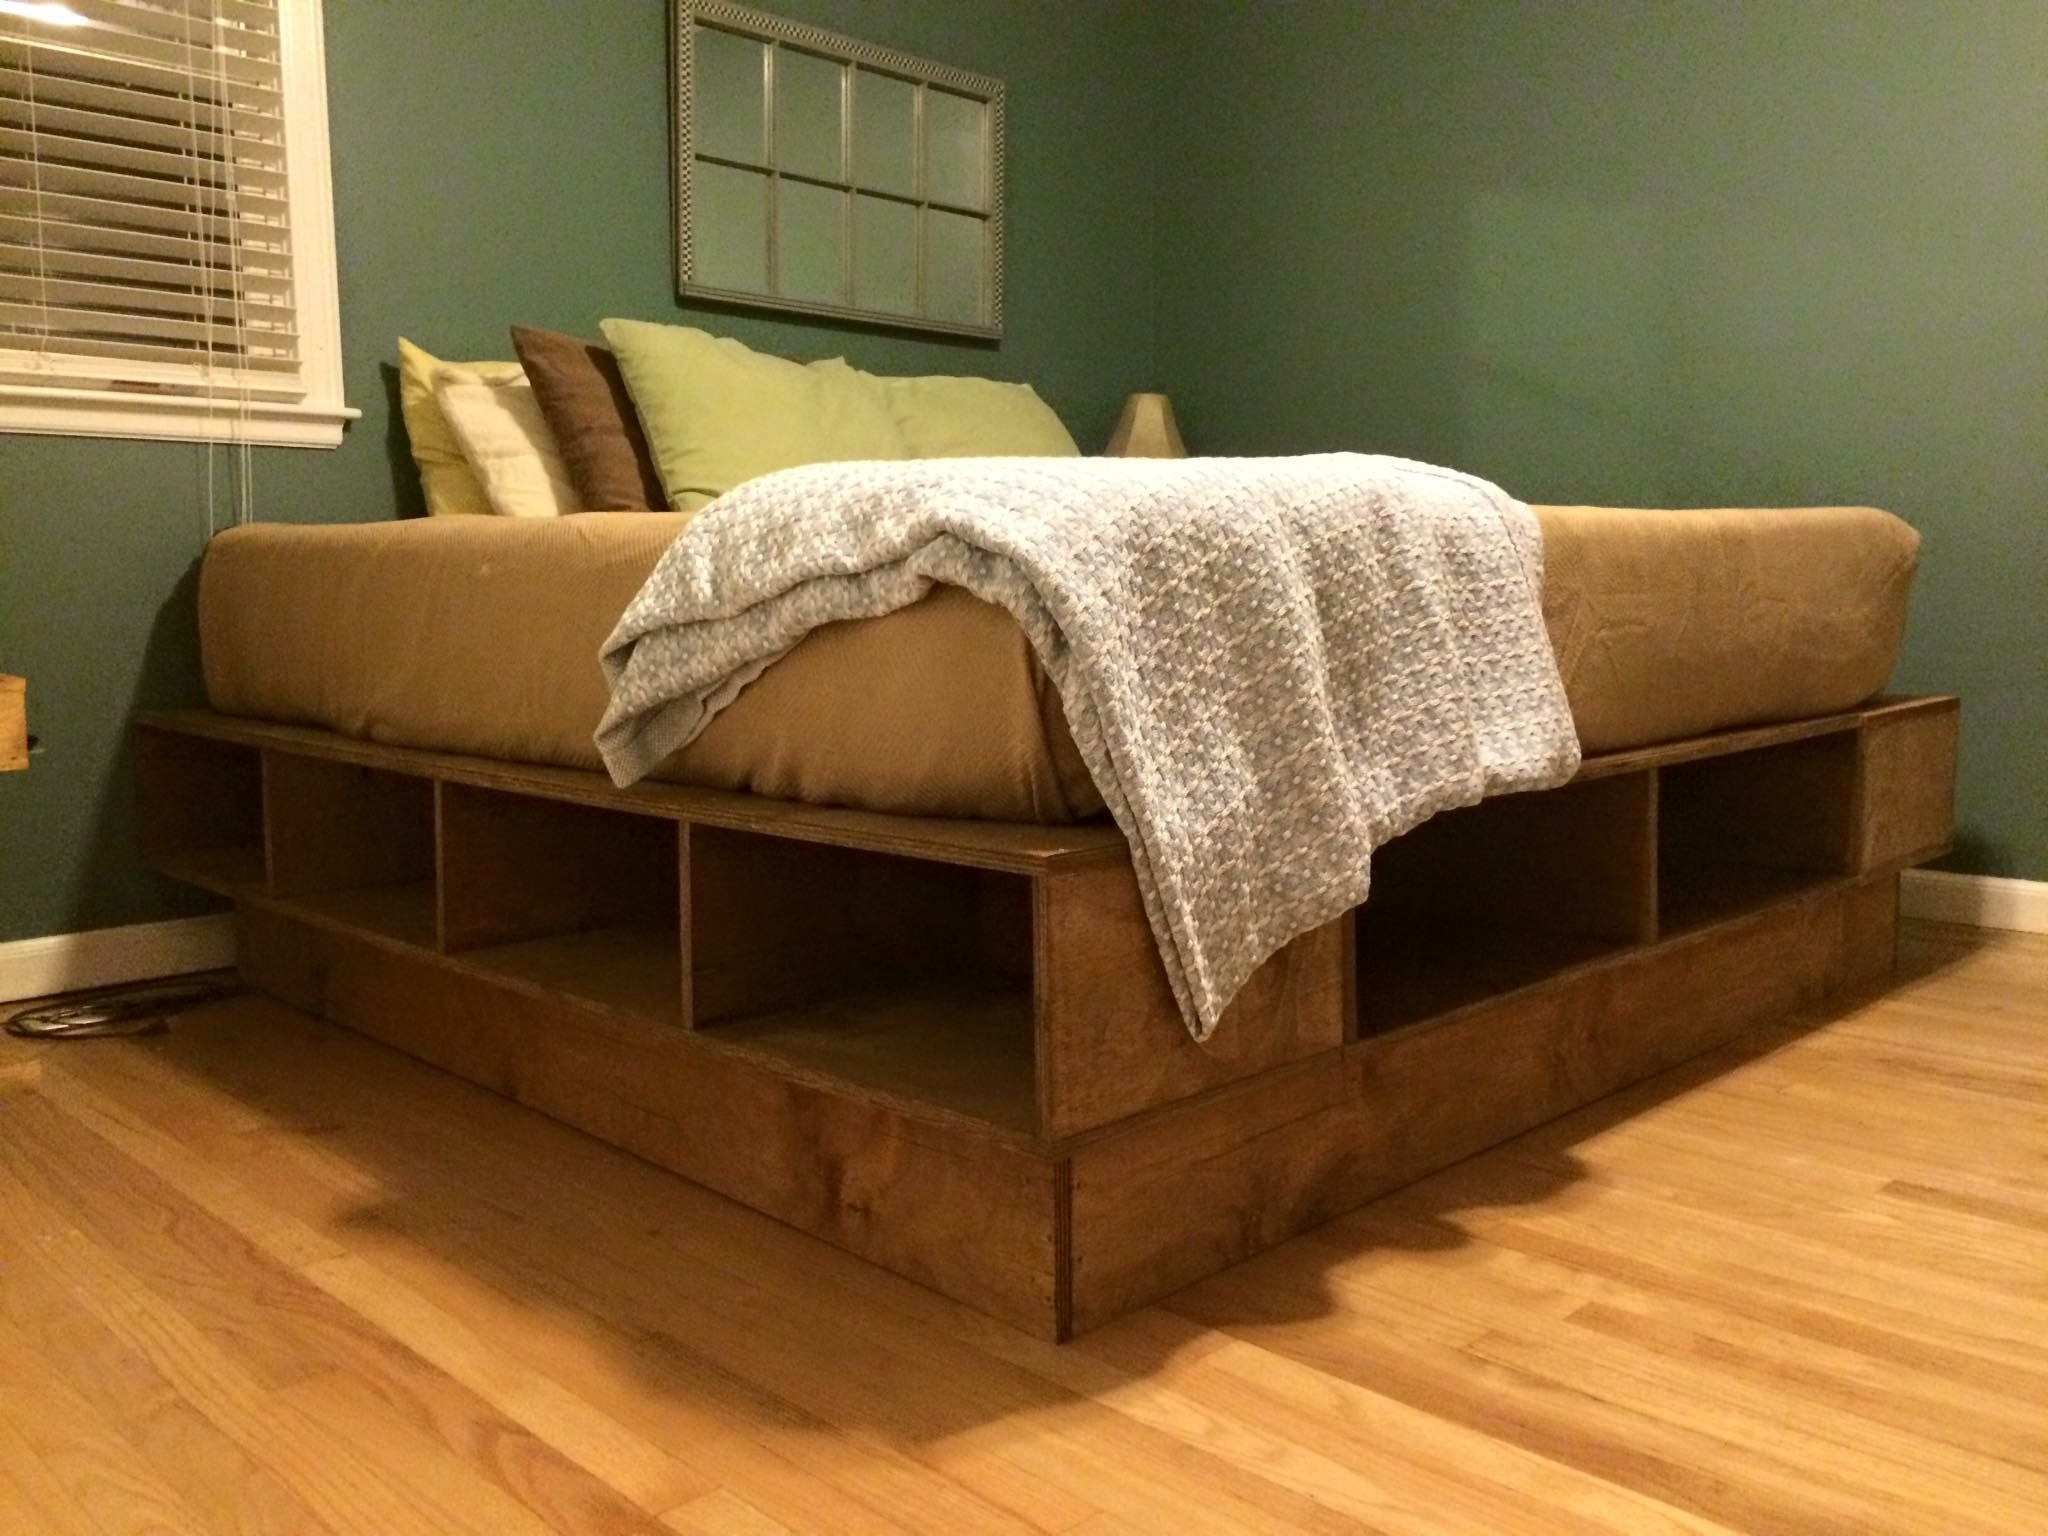 Platform Bed, King Size. Simple Straight Cuts. Used The